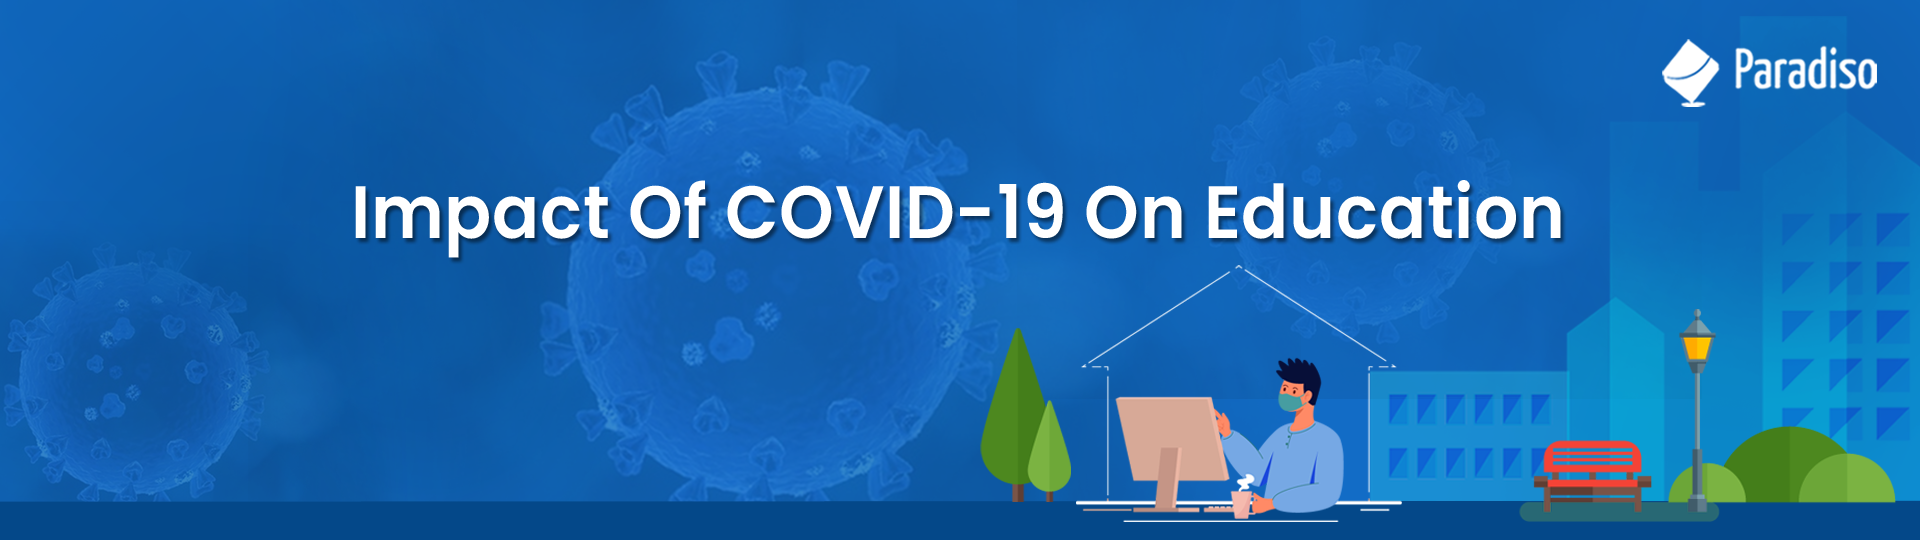 IMPACT Of COVID-19 On Education_Blog